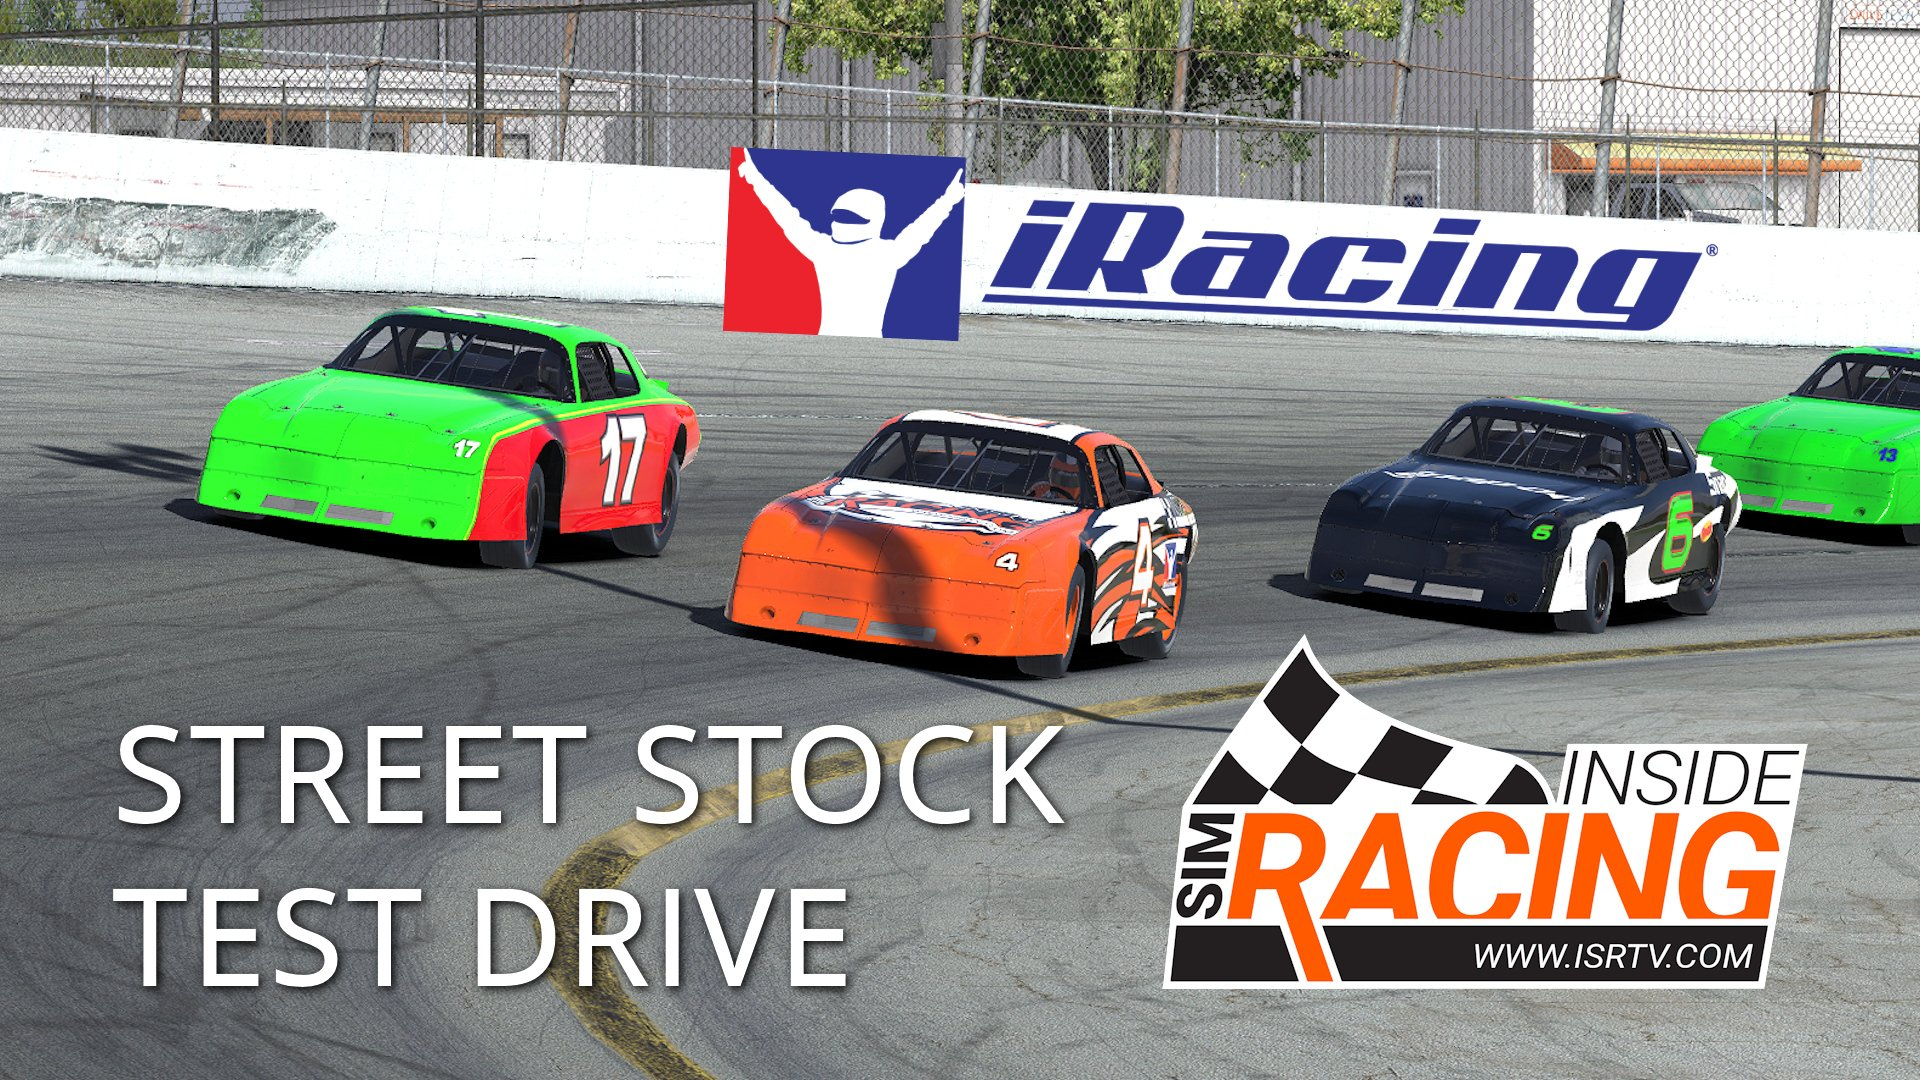 IRacing Week 13 Street Stock Test Drive At USA Speedway